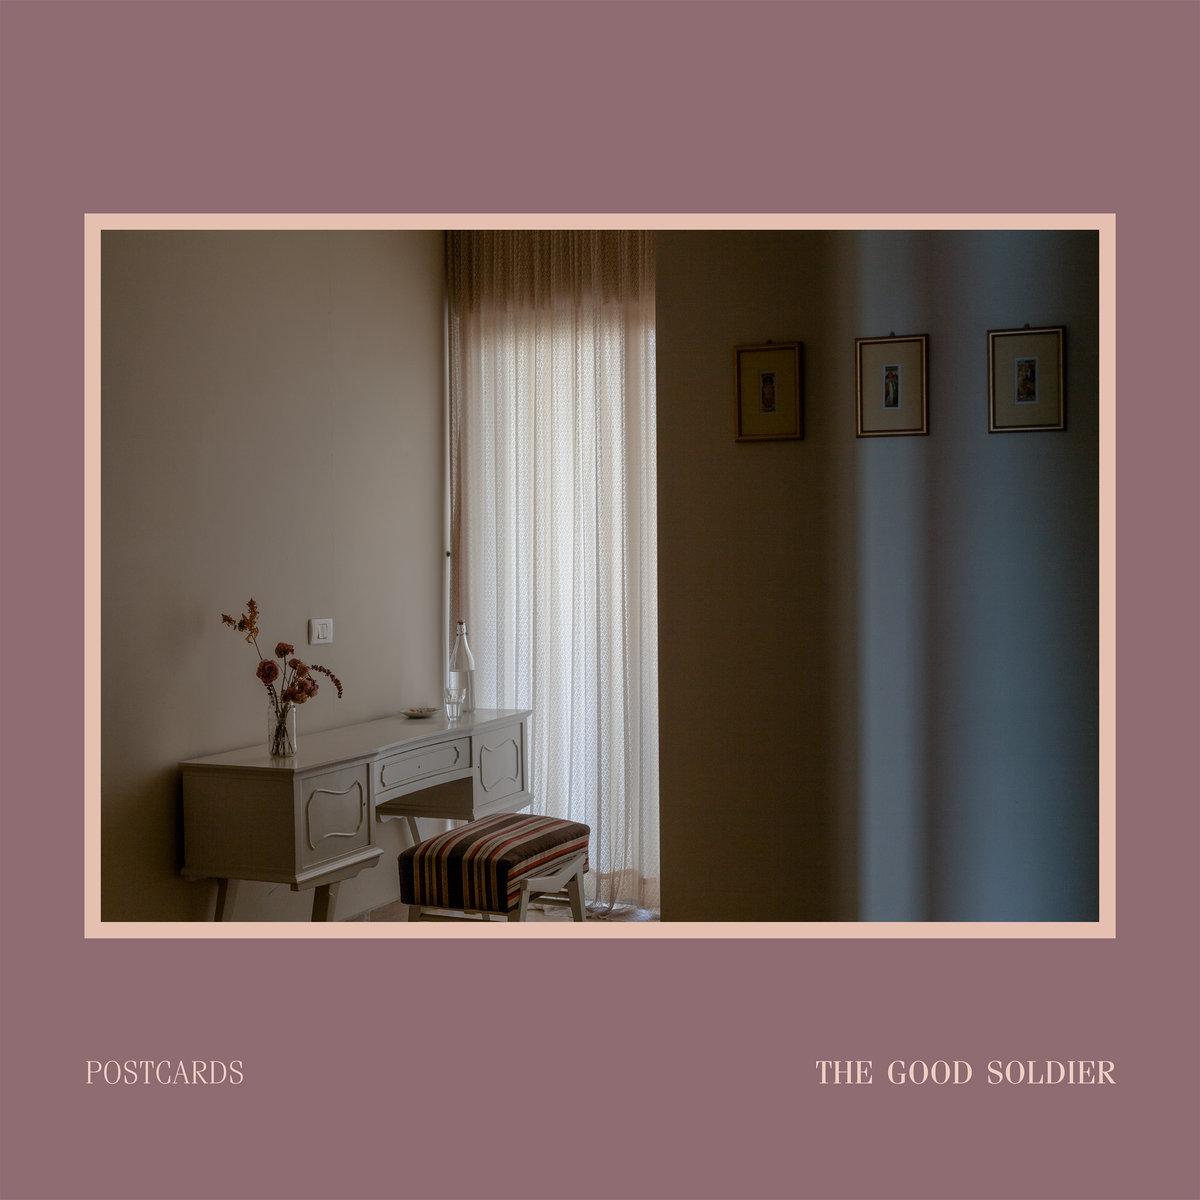 Postcards - The Good Soldier